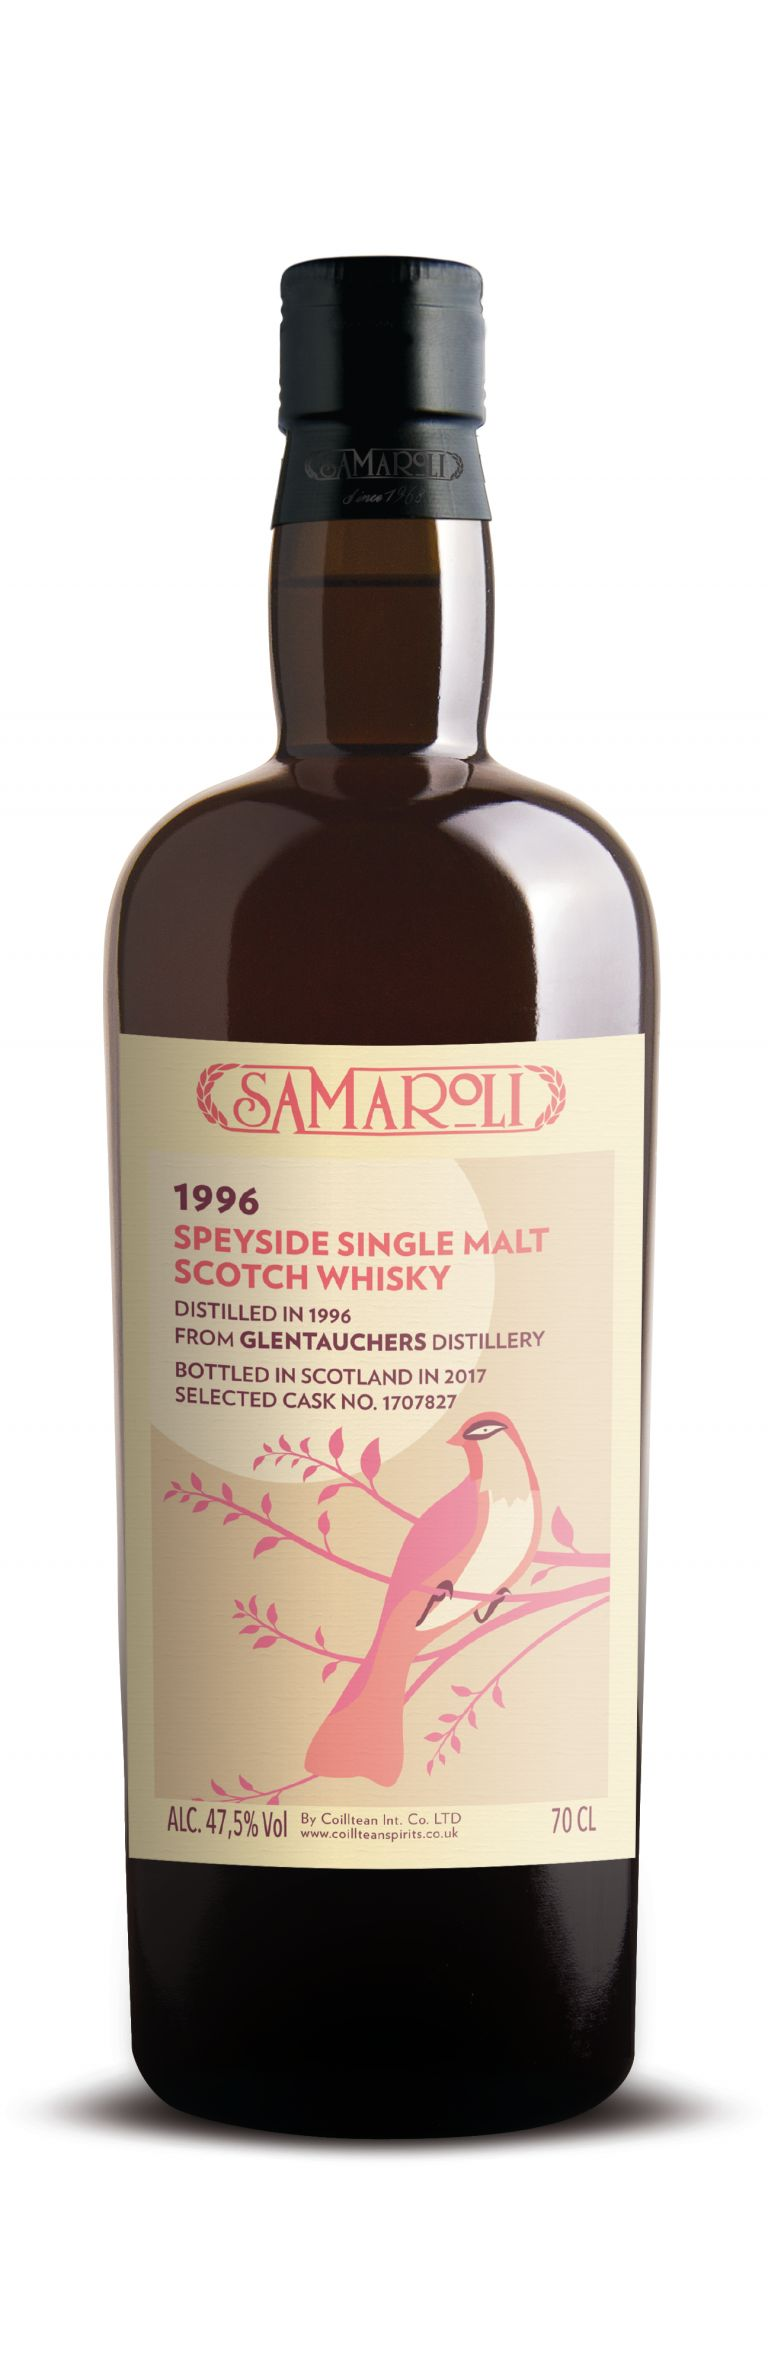 1996 Glentauchers - Speyside Single Malt Scotch Whisky - ed. 2017 - 70 cl